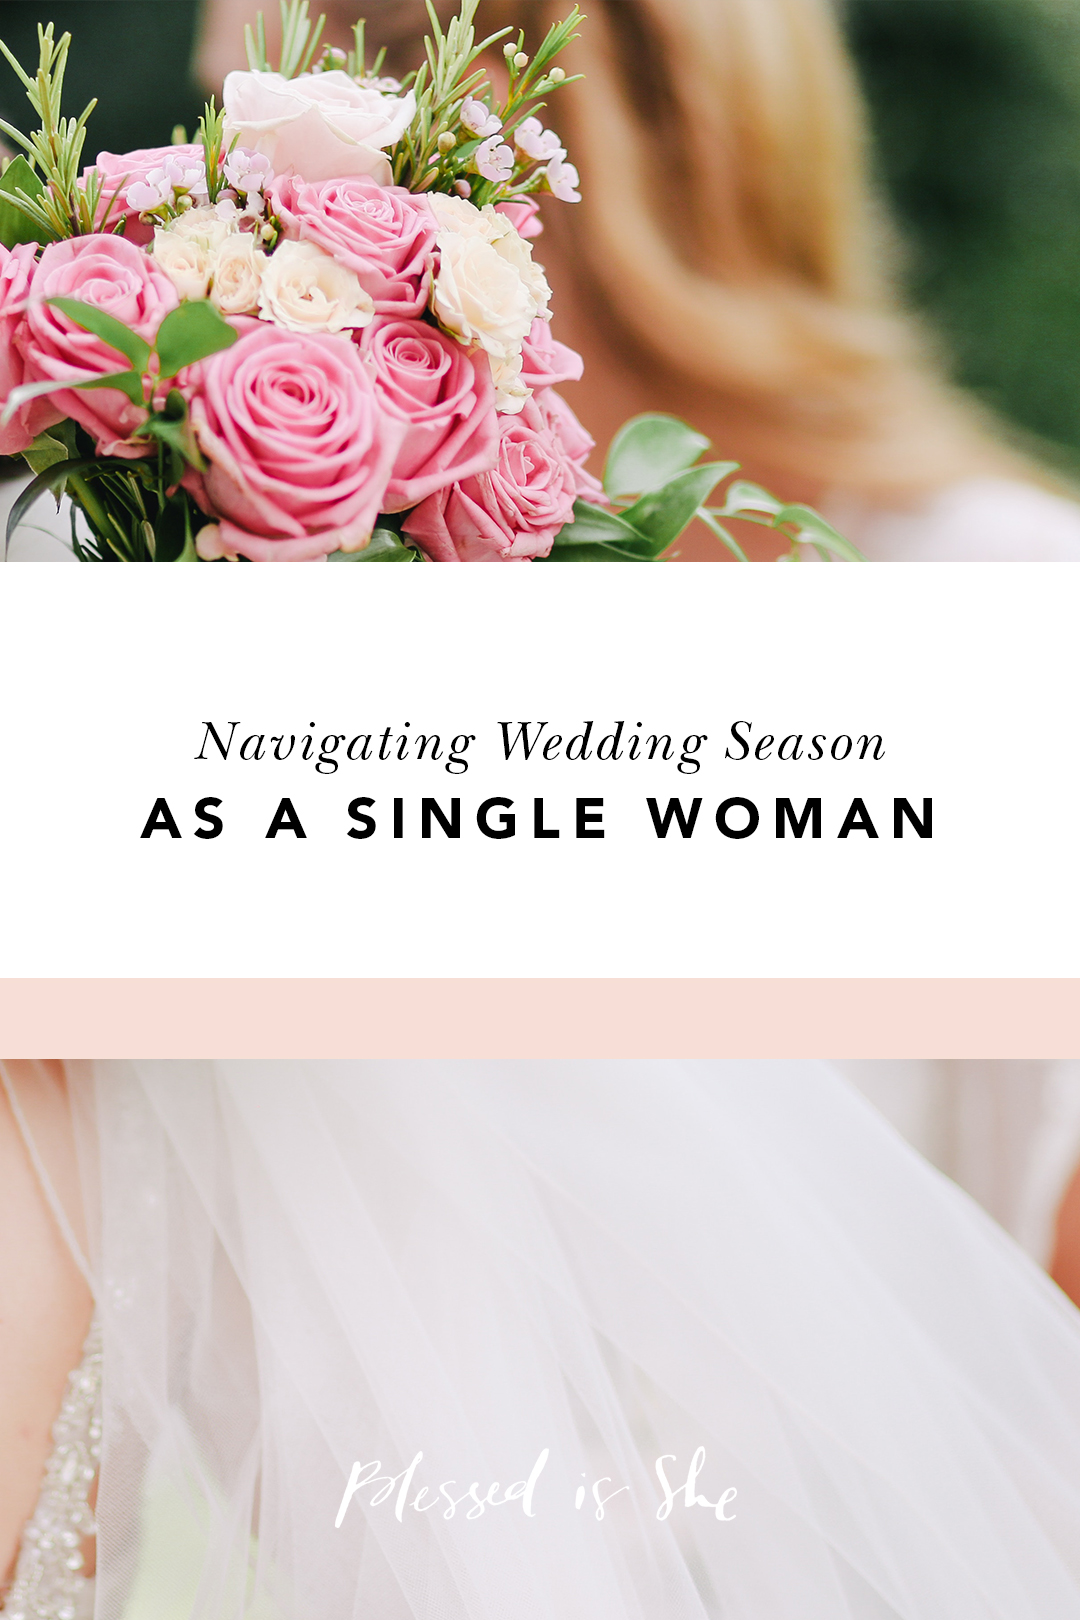 surviving wedding season when you're single